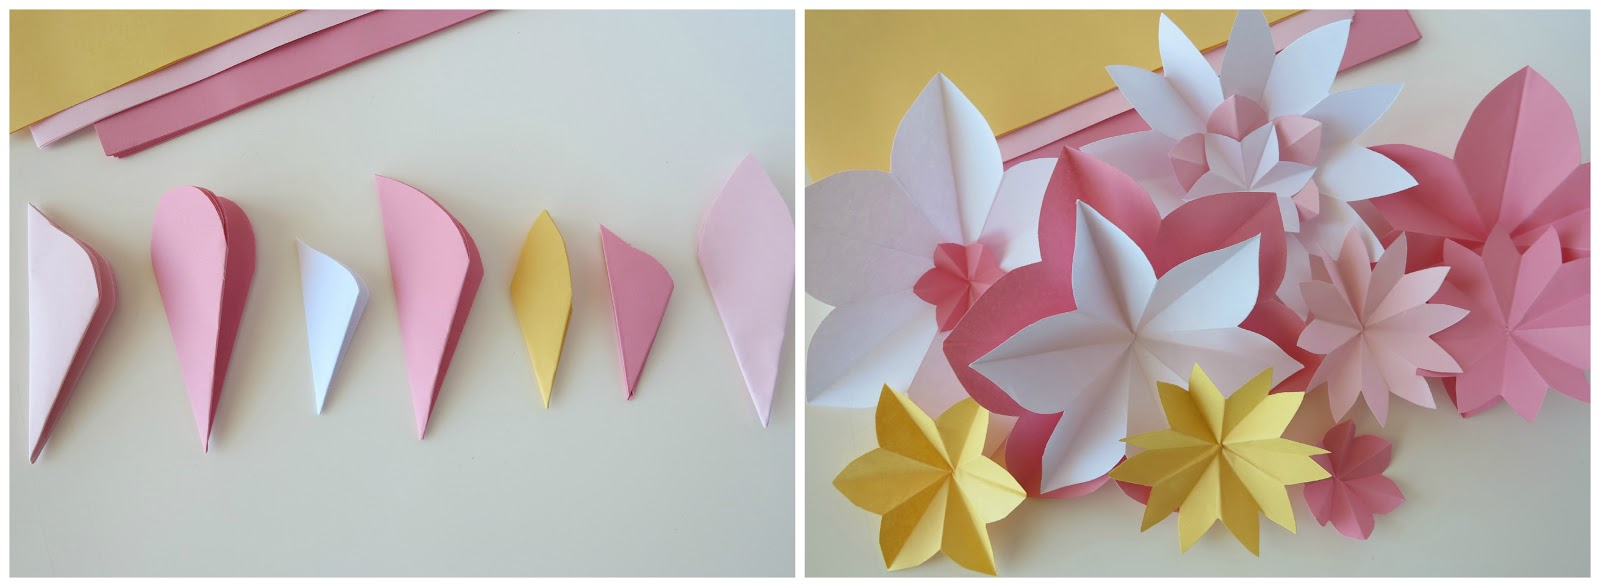 Ashlee rae designs paper flower tutorial mightylinksfo